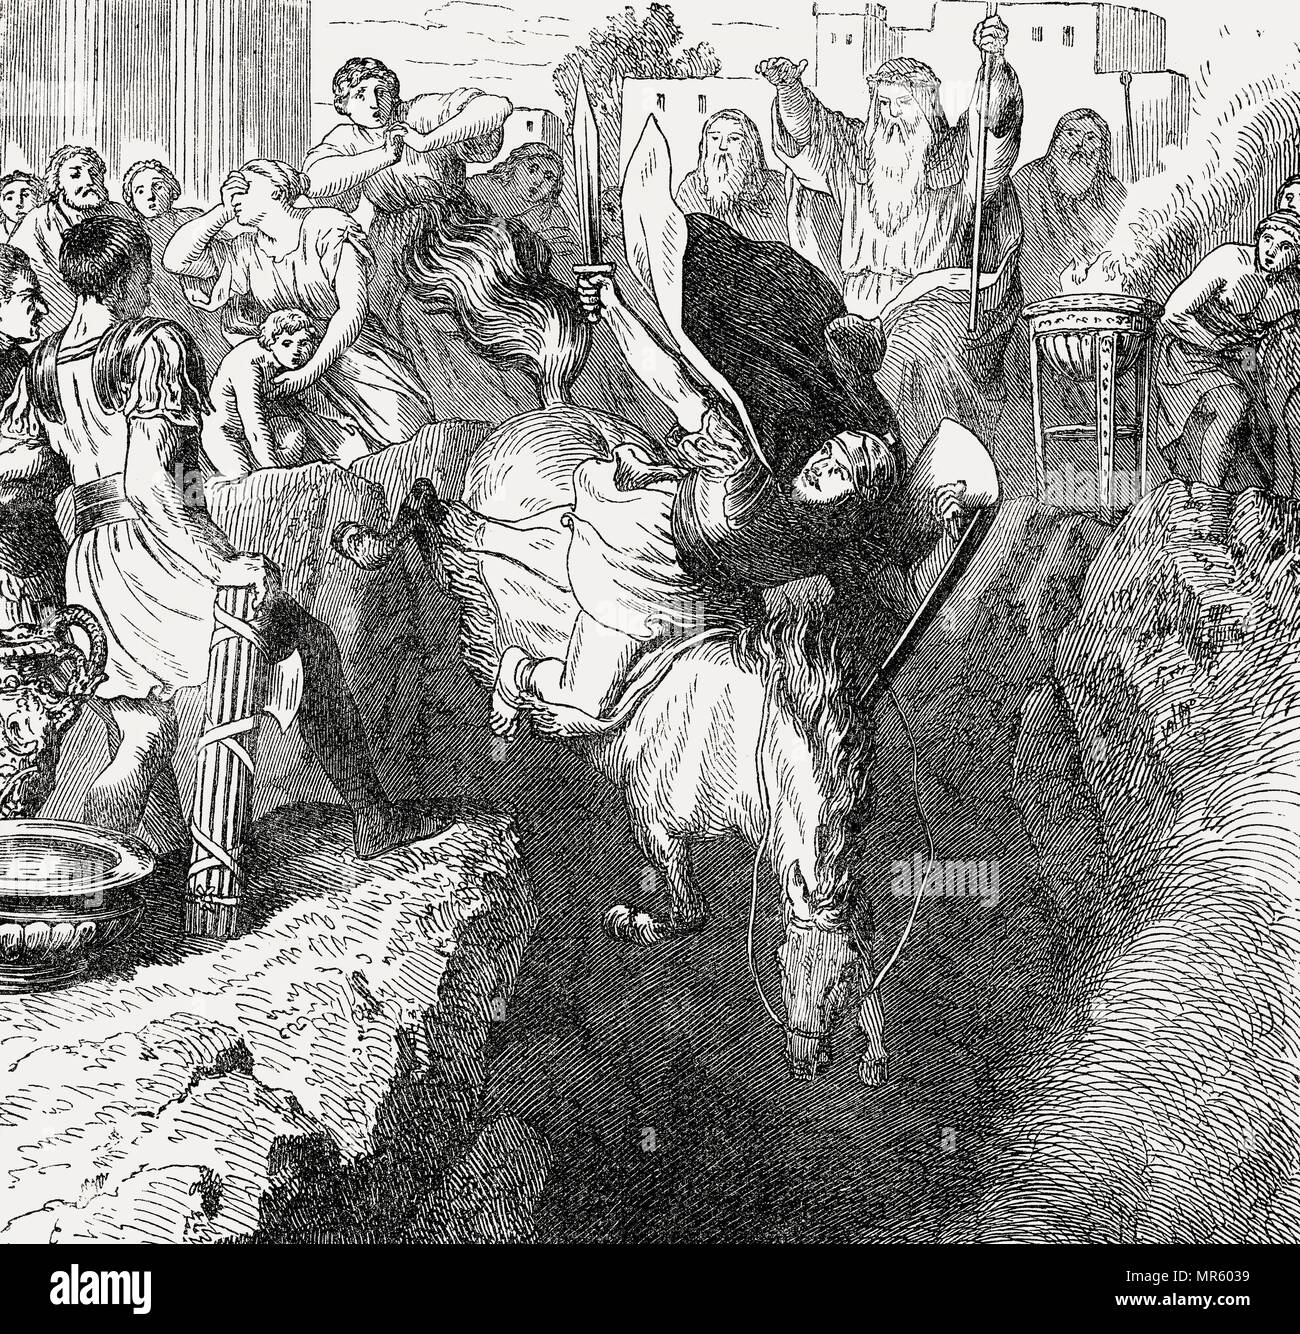 The Sacrificial Death of Marcus Curtius, Ancient Rome - Stock Image